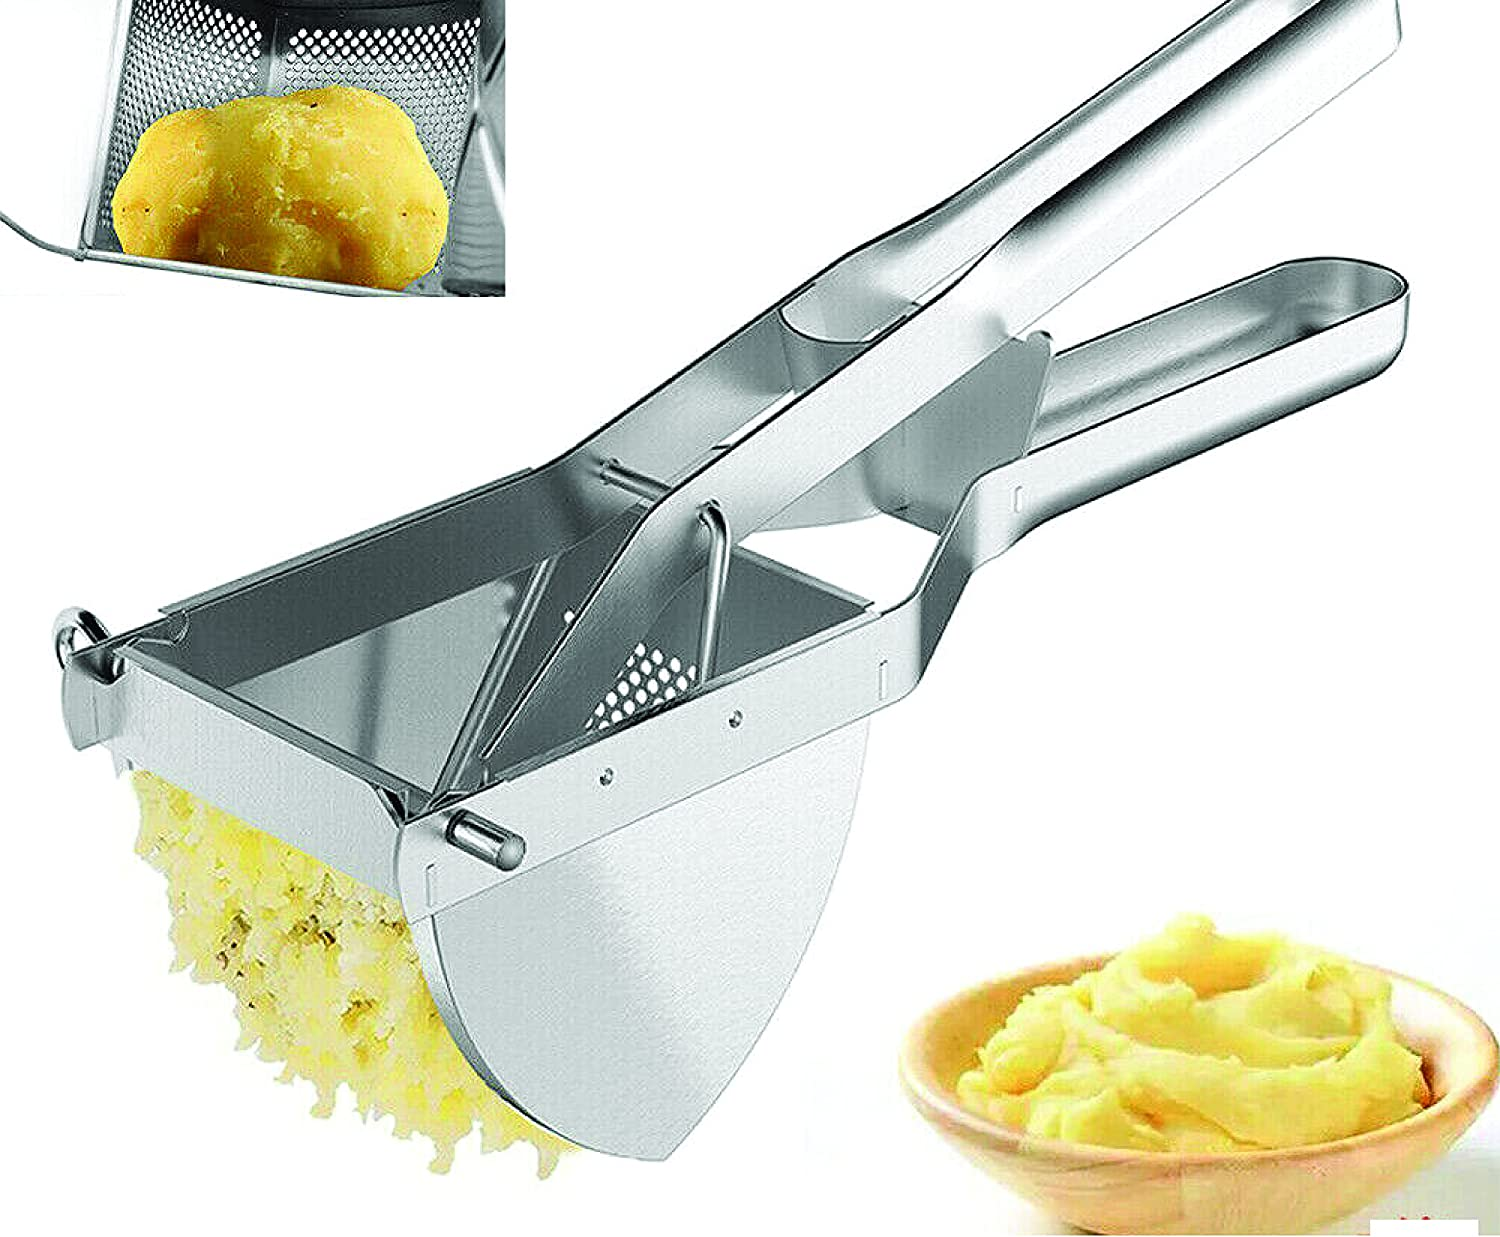 All items in the store Stainless Steel Potato Mash Ricer Fruit Vegetable Max 73% OFF Masher Crushin